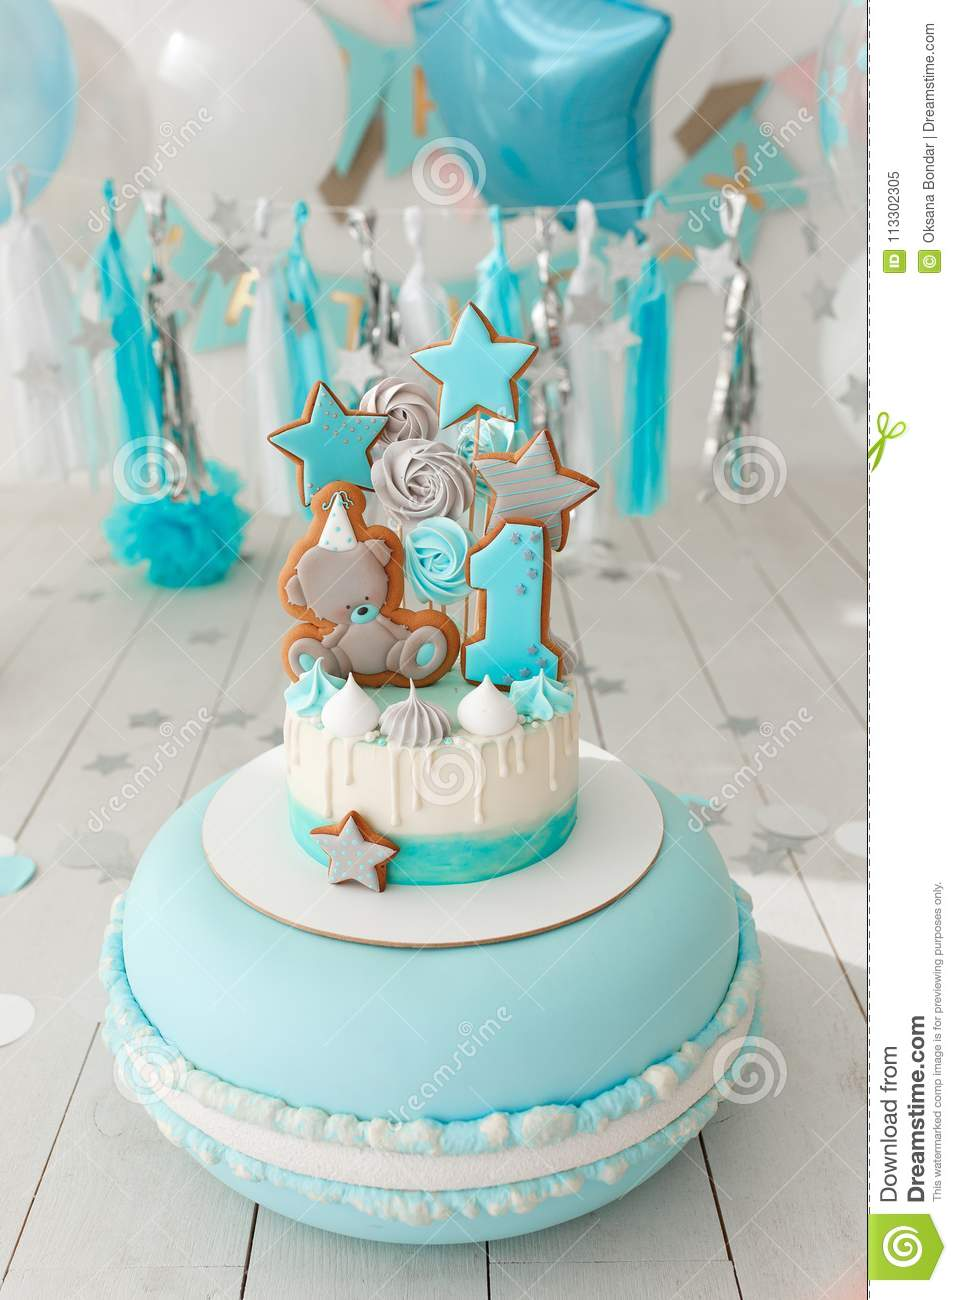 First Birthday Cake With White And Blue Decor Stock Image Image Of